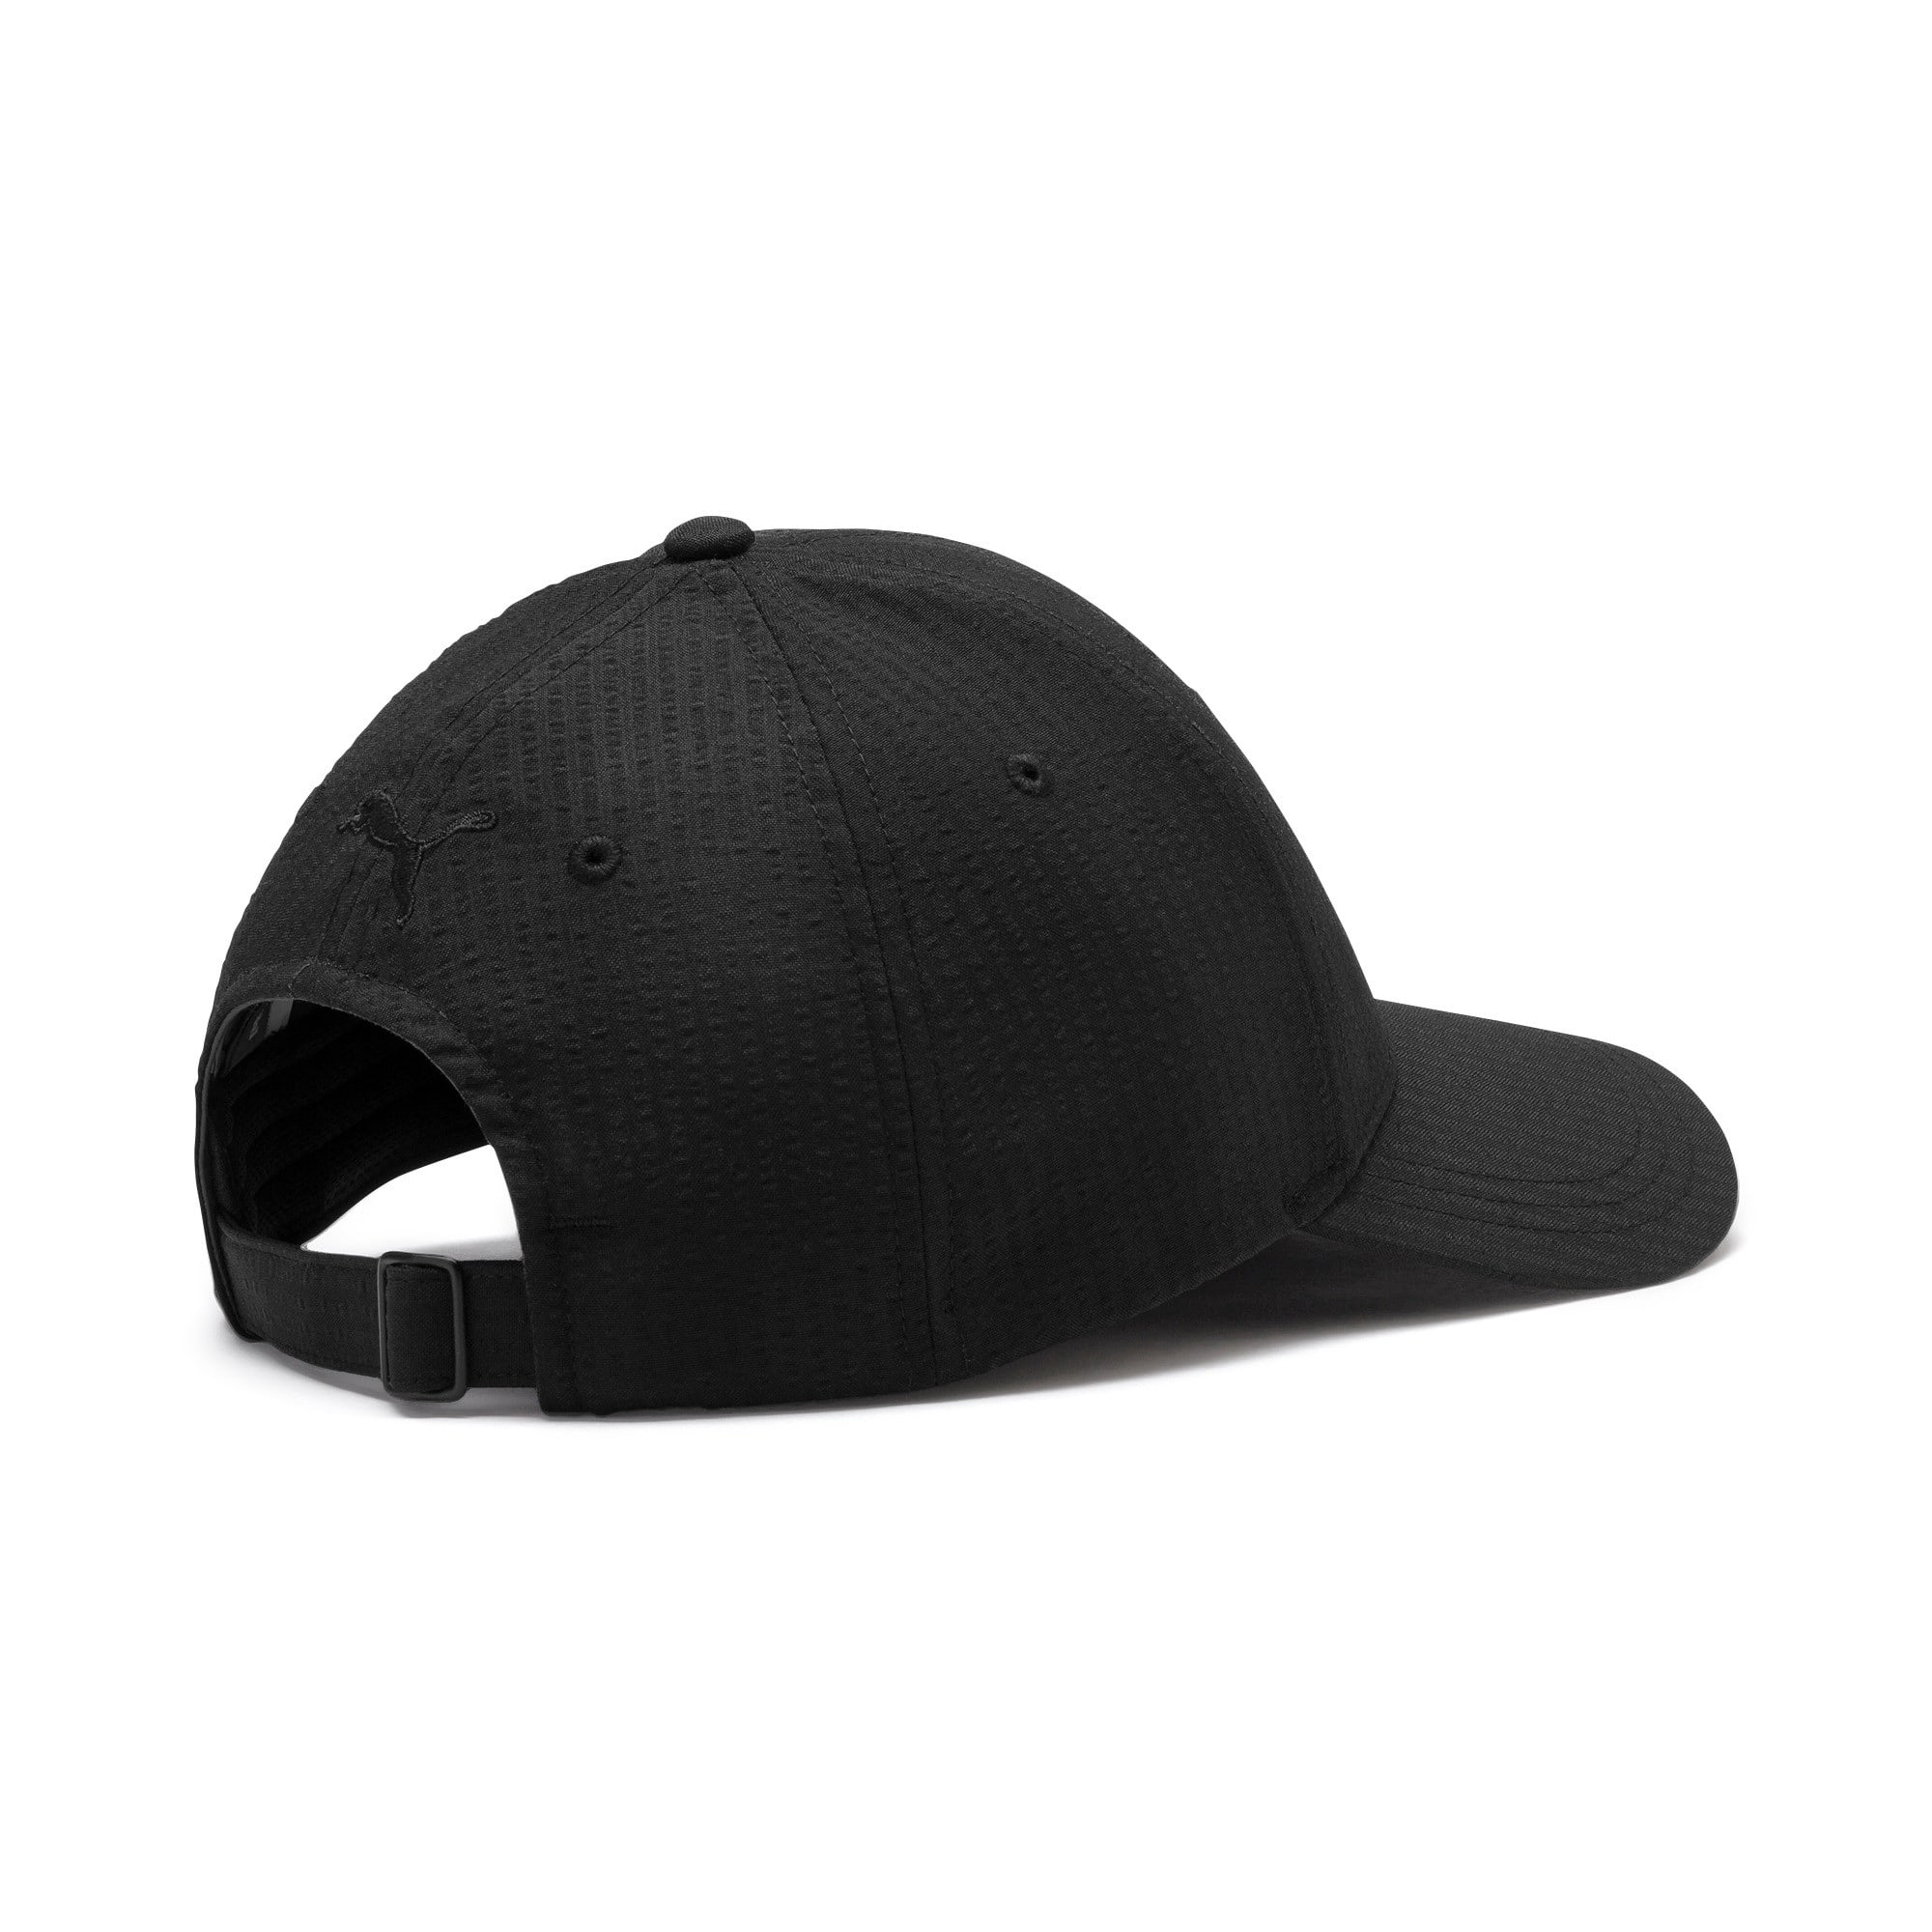 Thumbnail 3 of Scuderia Ferrari Lifestyle Baseball Cap, Puma Black, medium